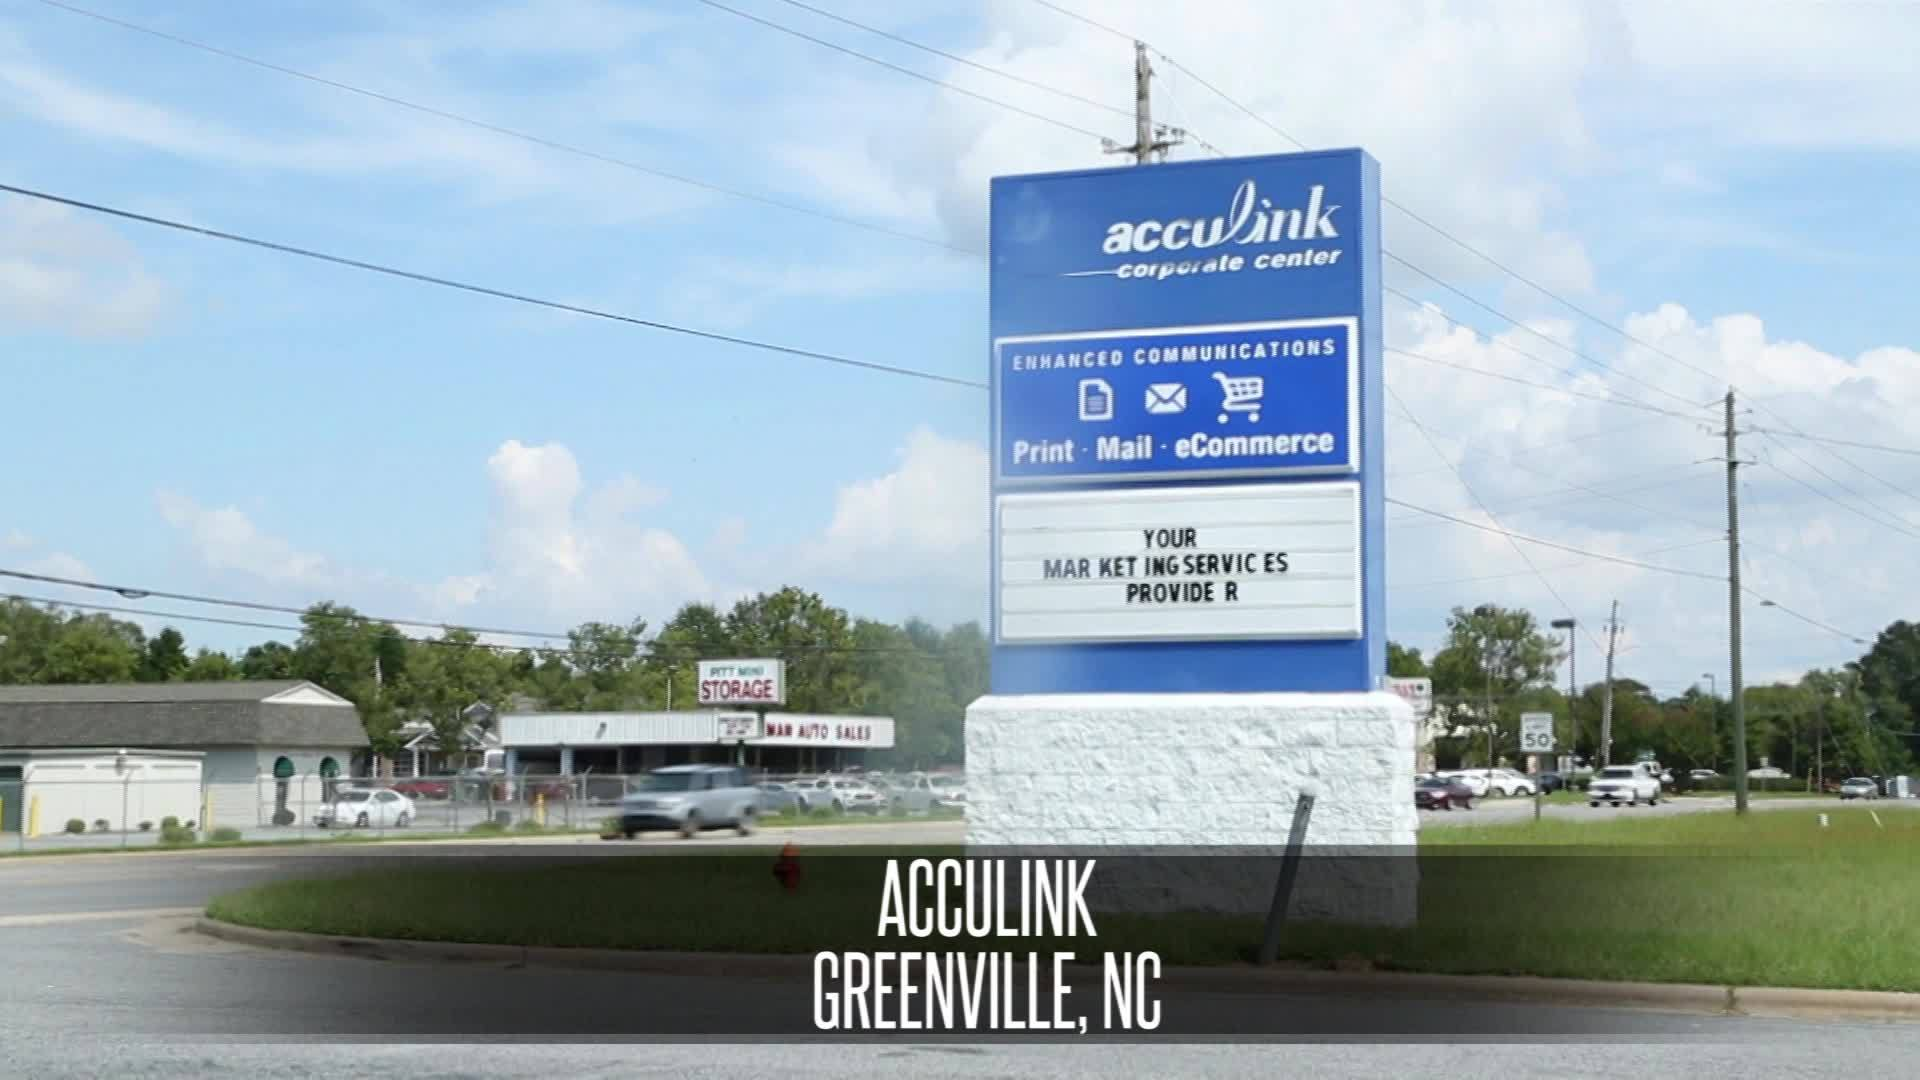 Acculink - Better Business Brief